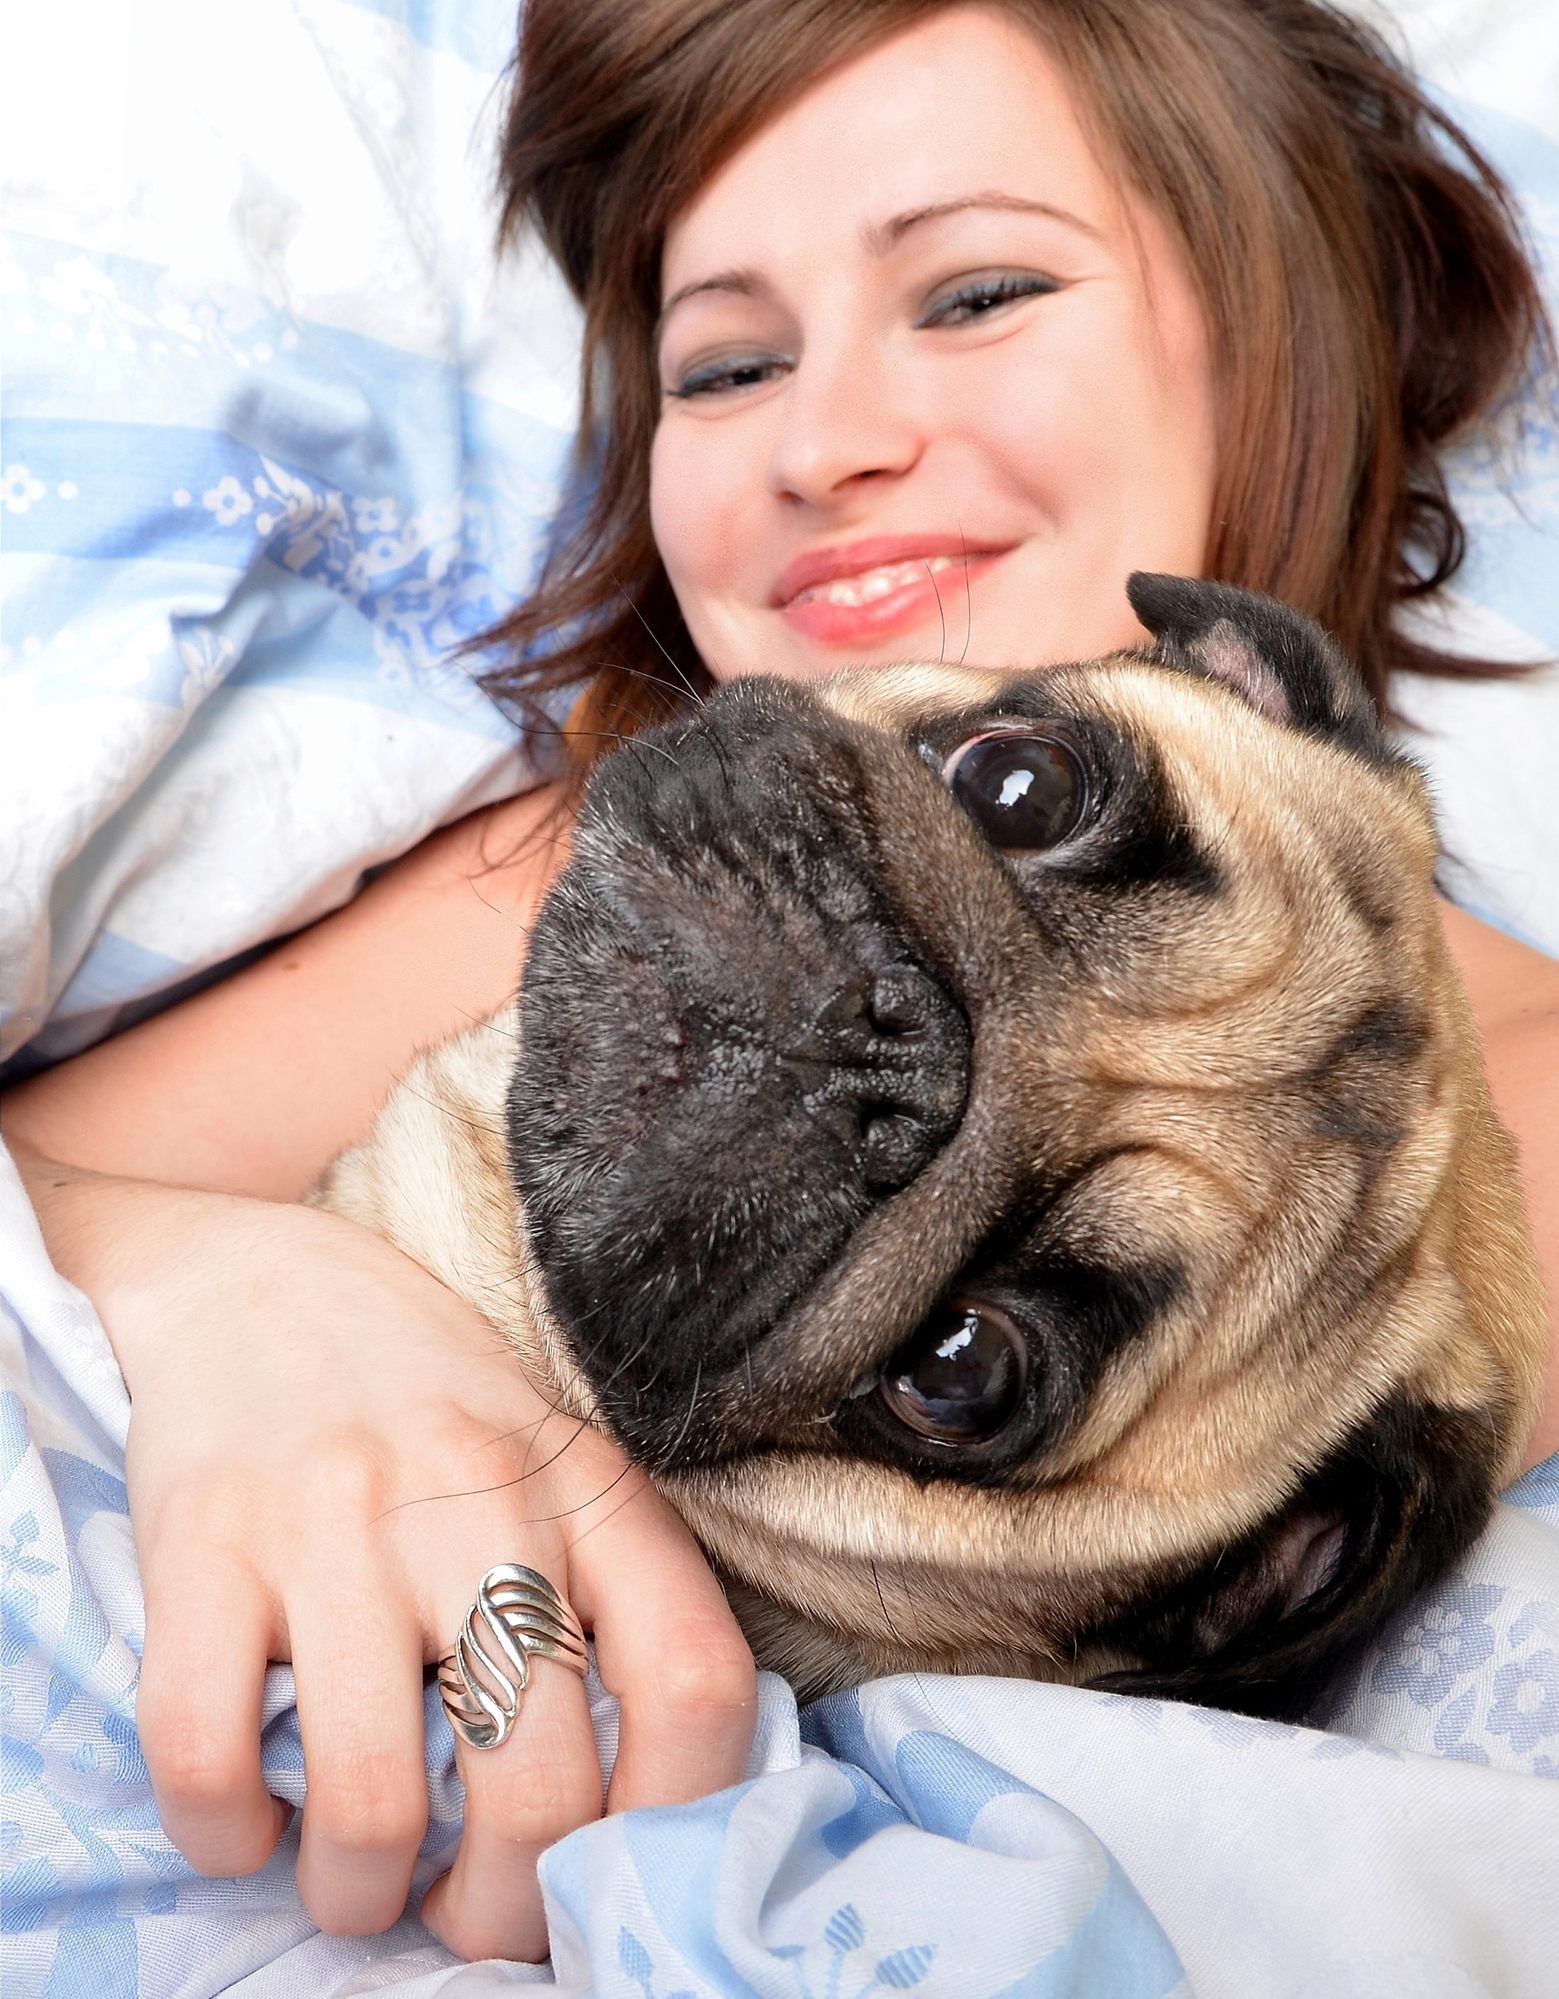 Owner-sleeping-with-pug-dog